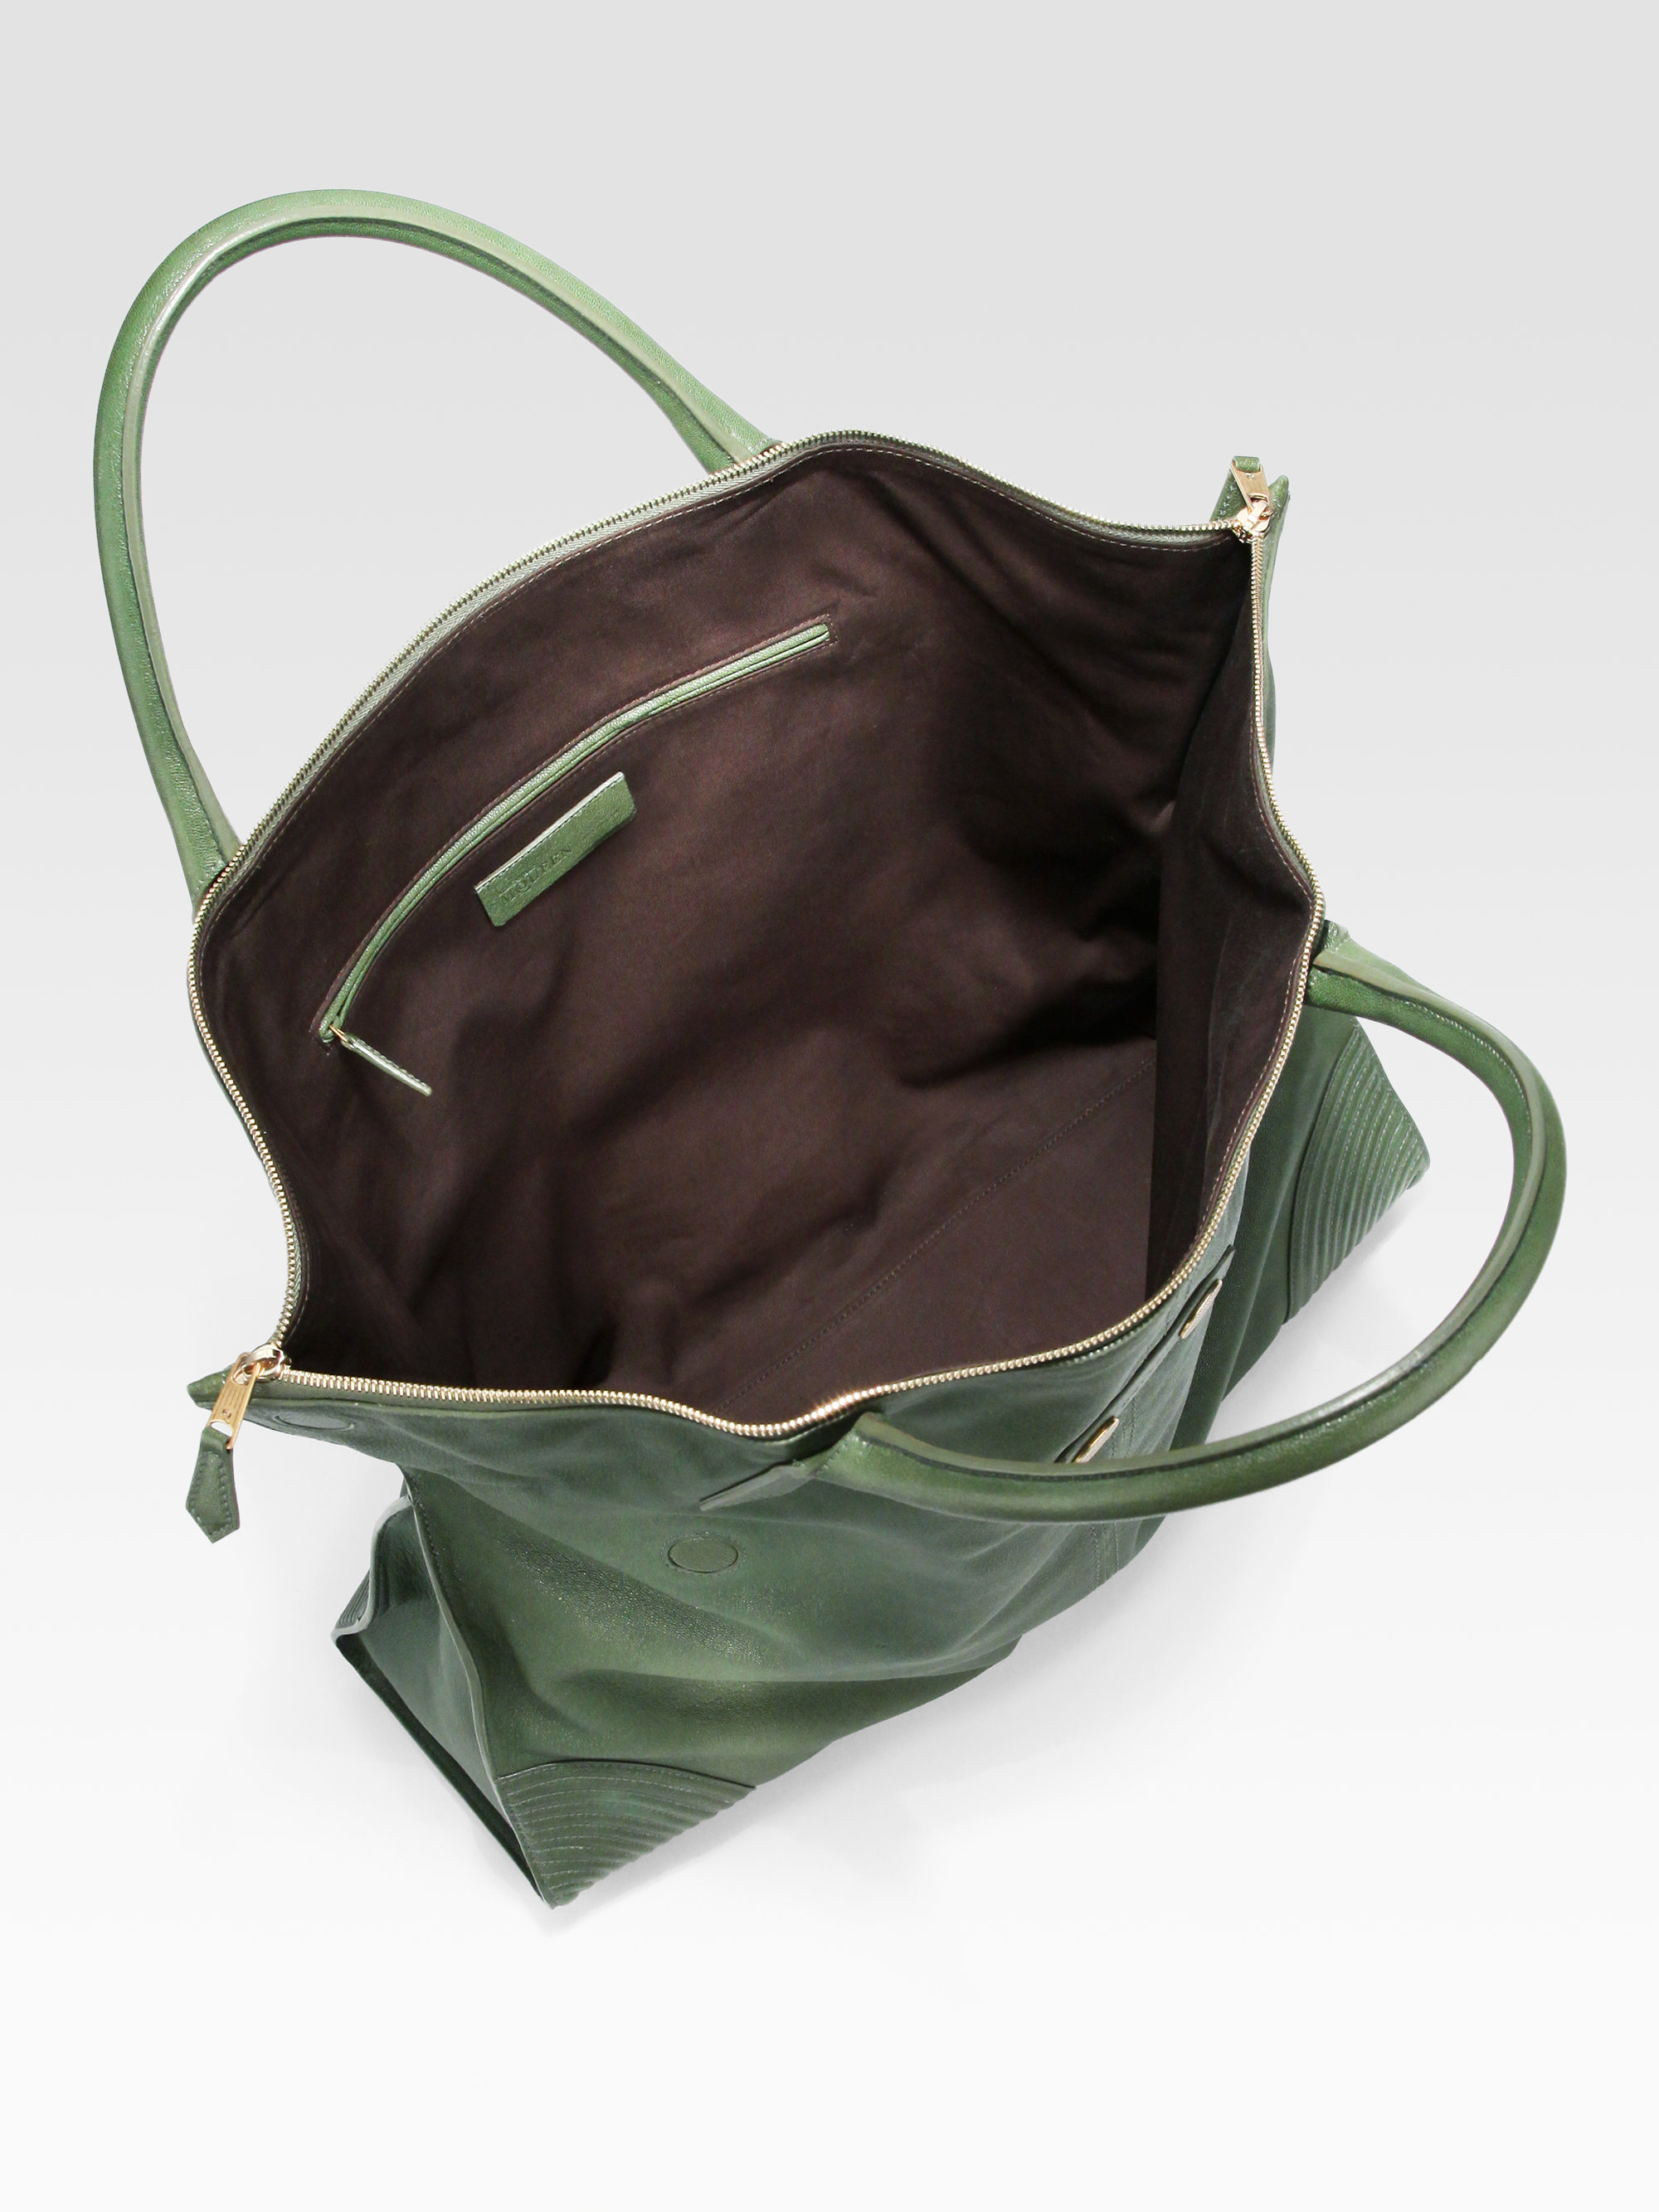 Lyst - Alexander McQueen De Manta Large Leather Tote Bag in Green 47f1c185f4c